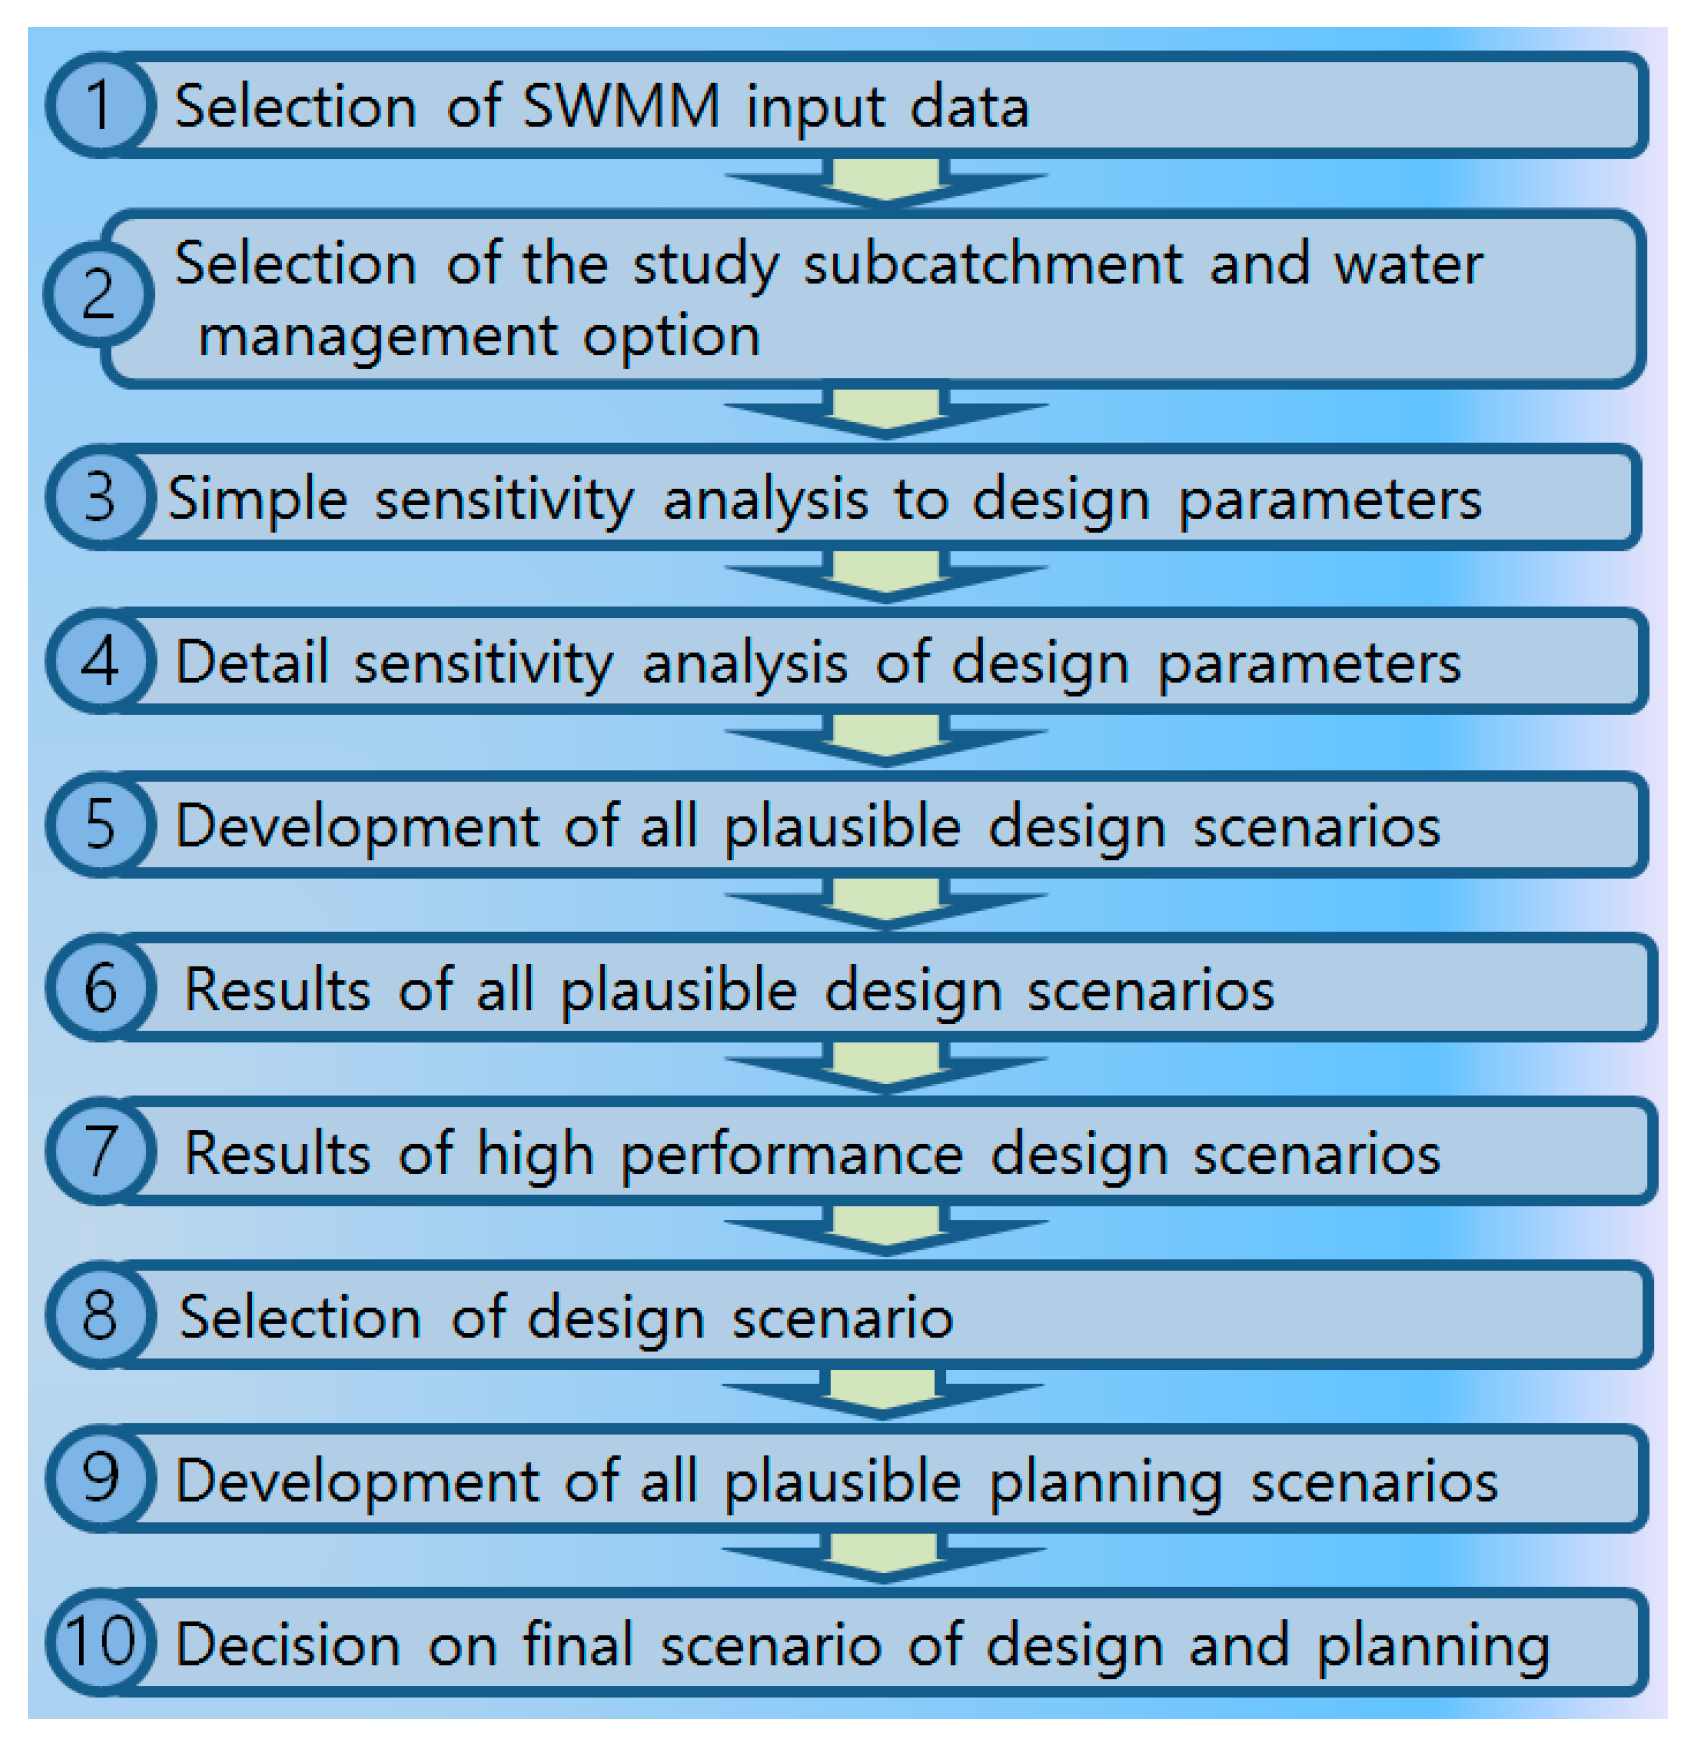 how good design specification and management A user-based definition— if the product conforms to design specifications value-based definition— if the product is perceived as providing good value for the price e it has good quality d the product has good quality answer: e moderate 6.